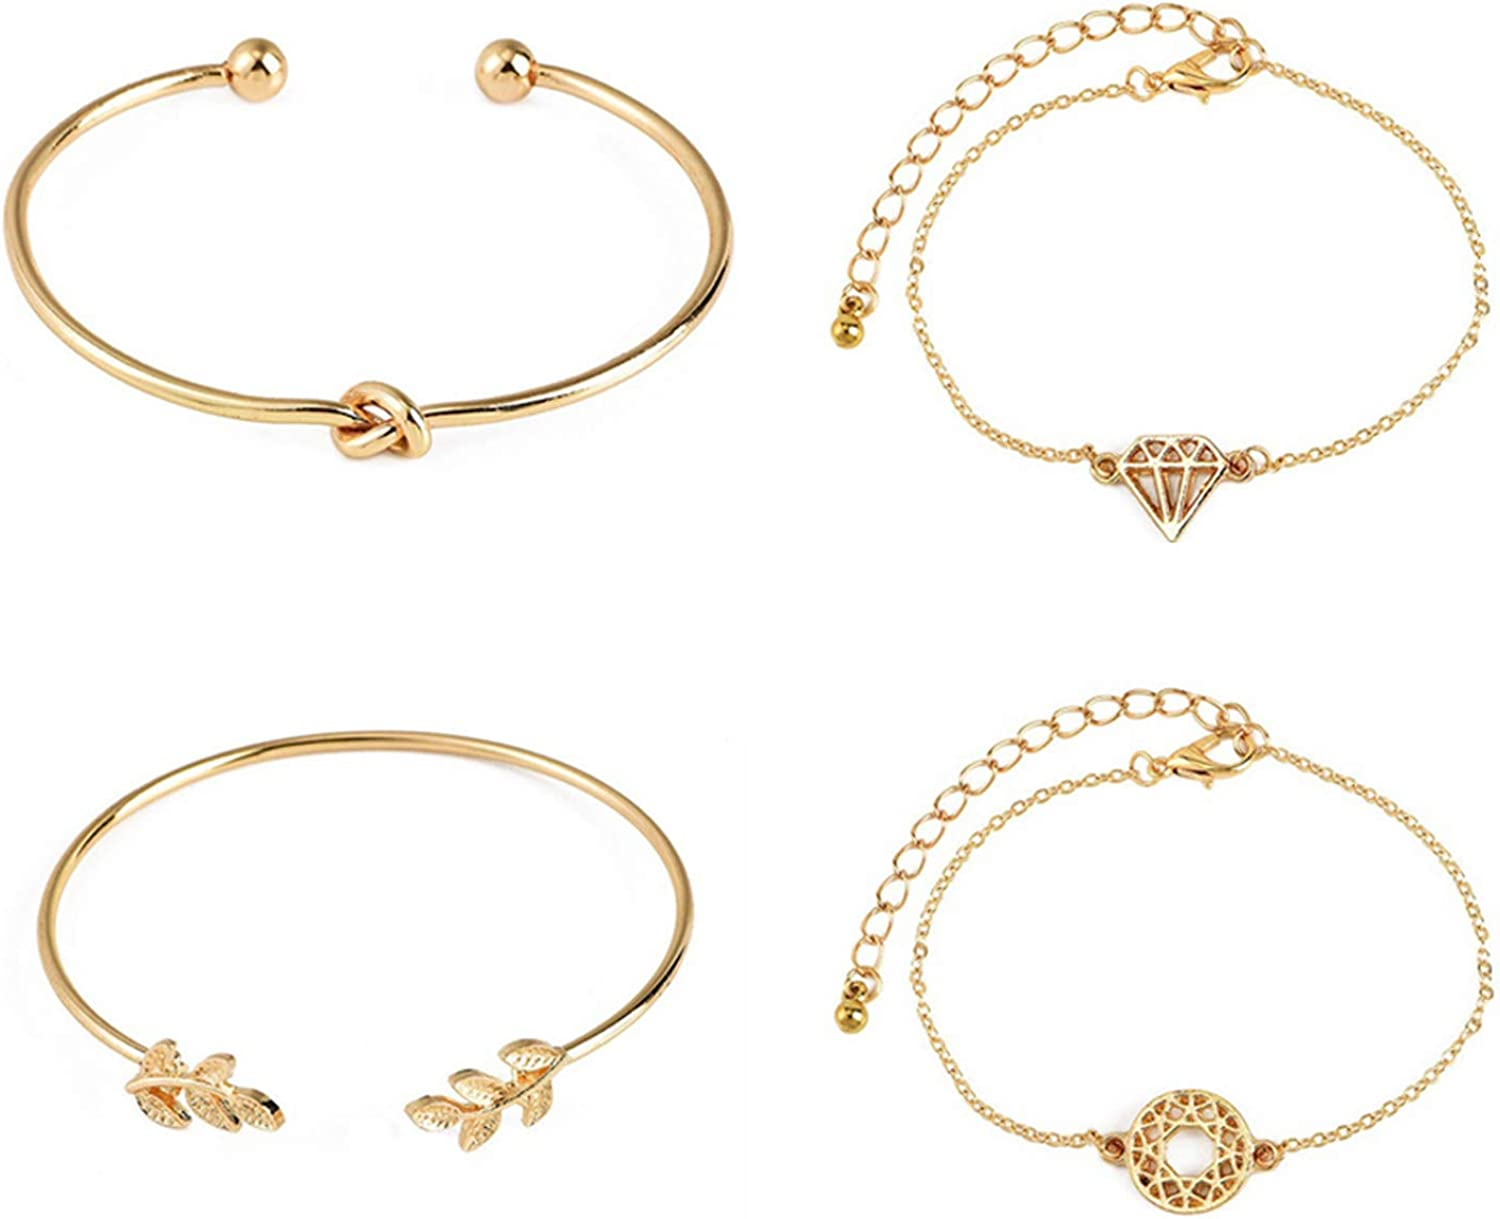 4Pcs/Set Bracelet Open Cuff Adjustable Jewelry Exquisite Hand Chain Gift for Party for Women Men Girls Boys